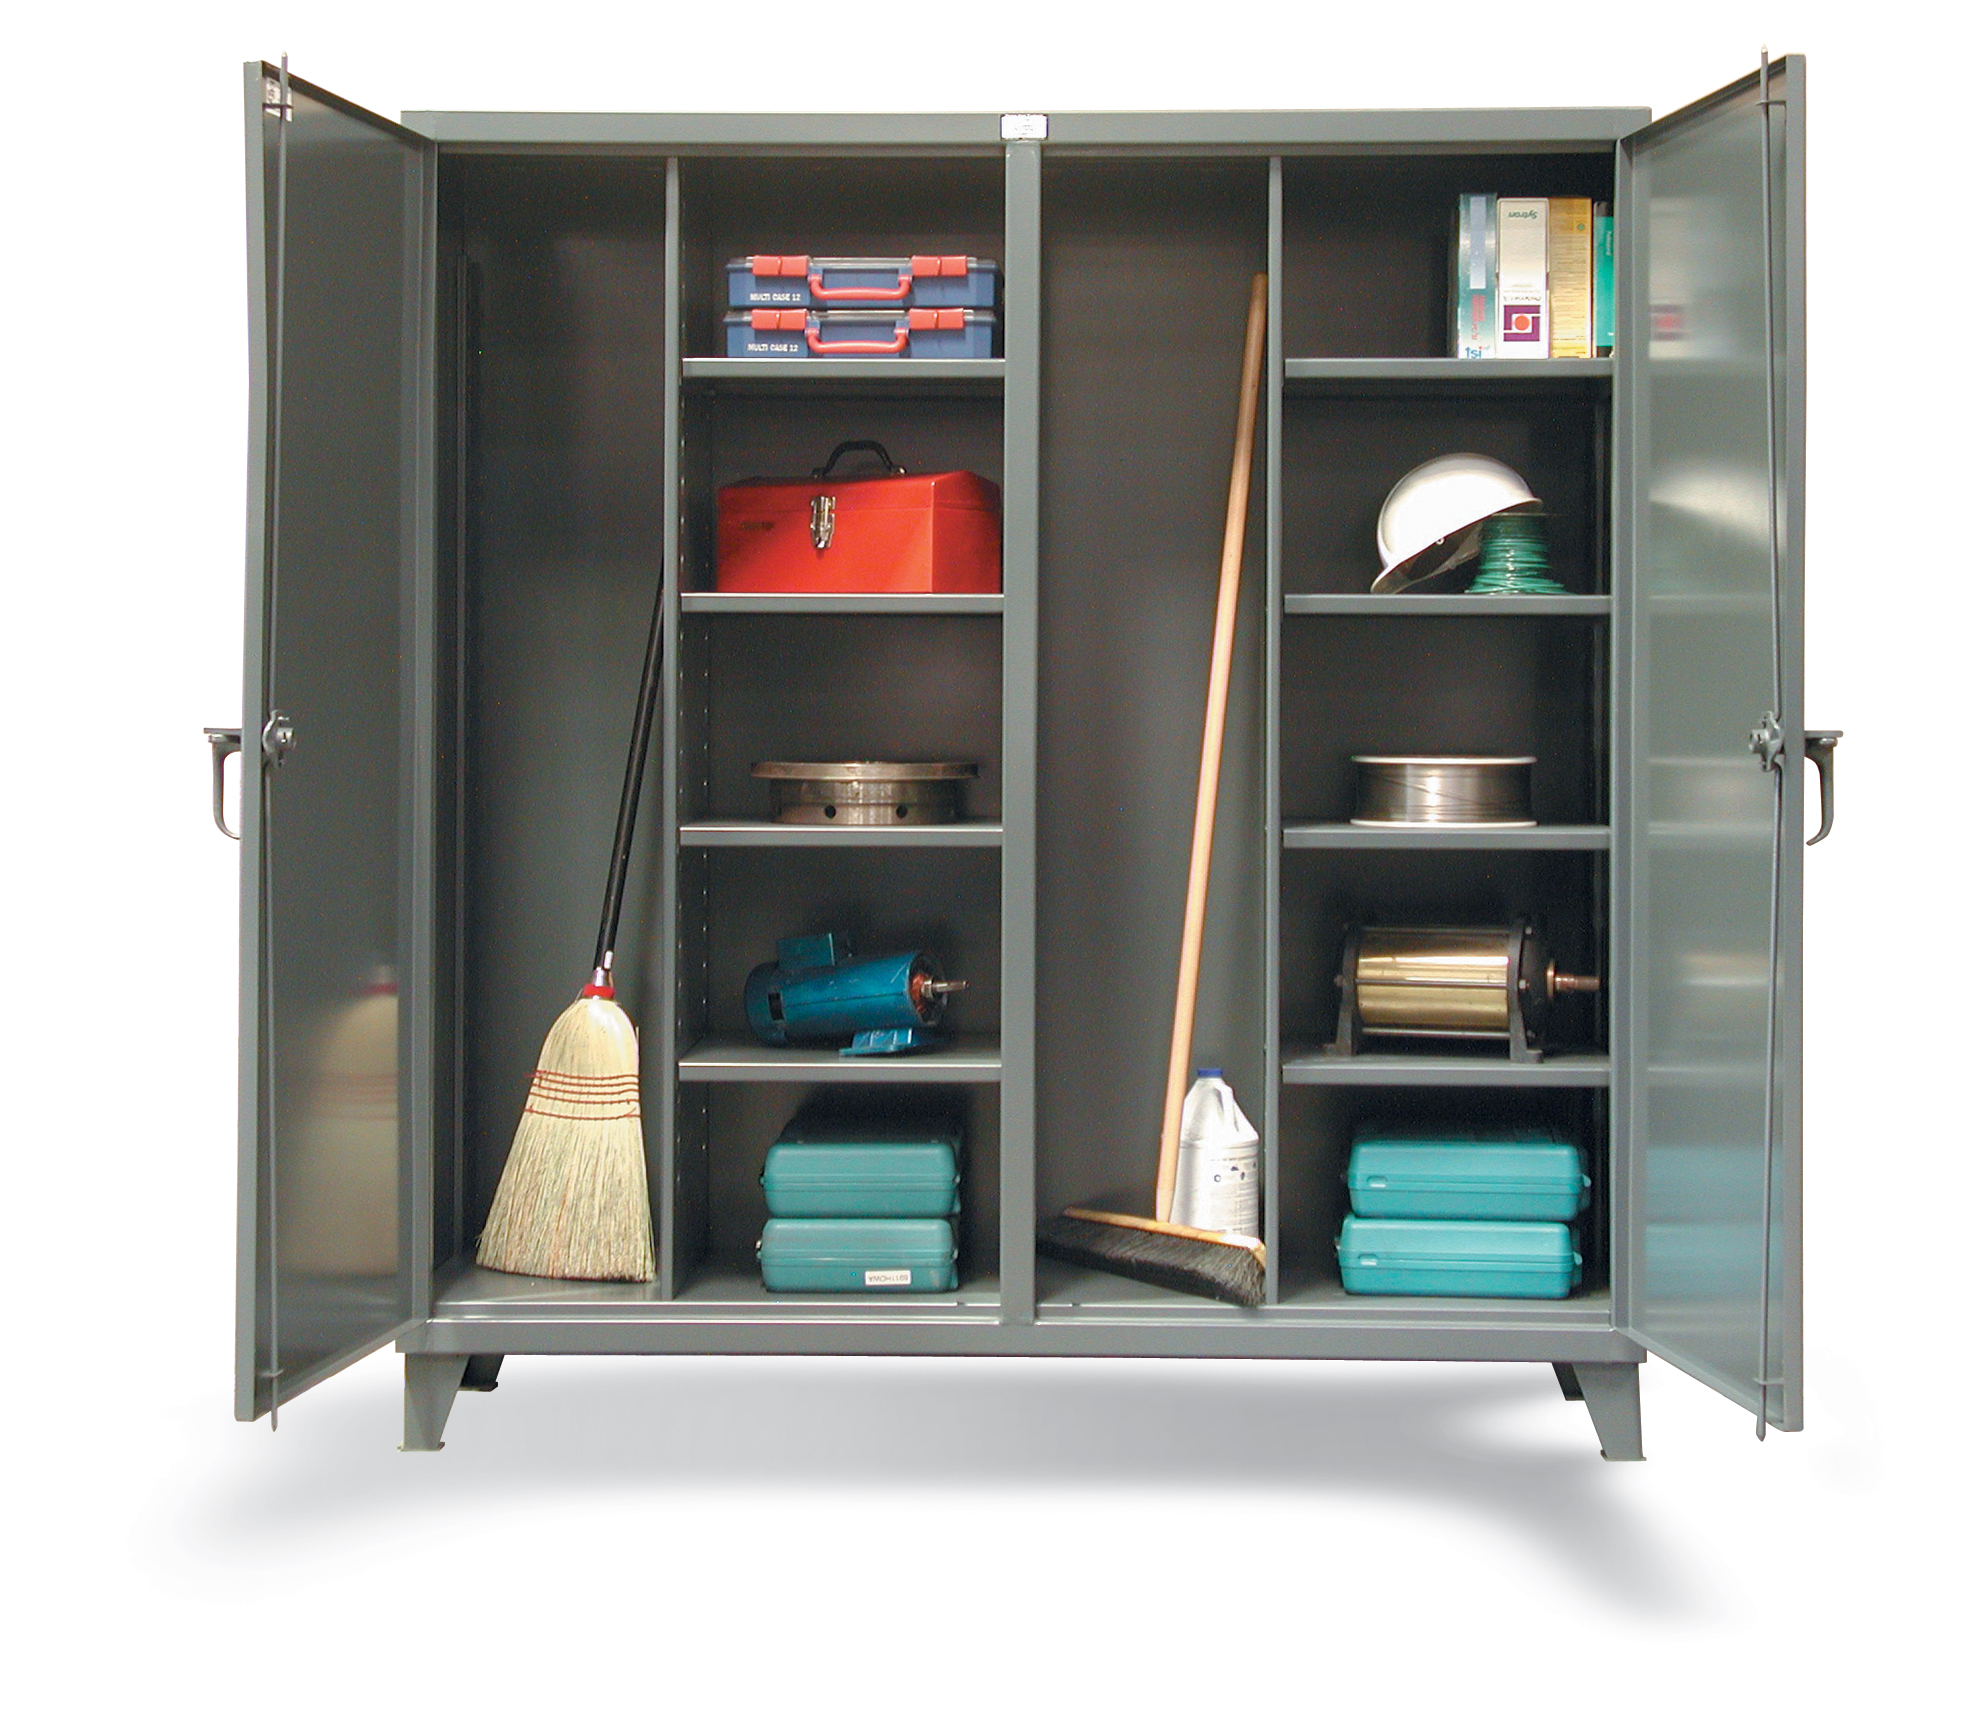 large stainless steel storage for brooms and other stuffs